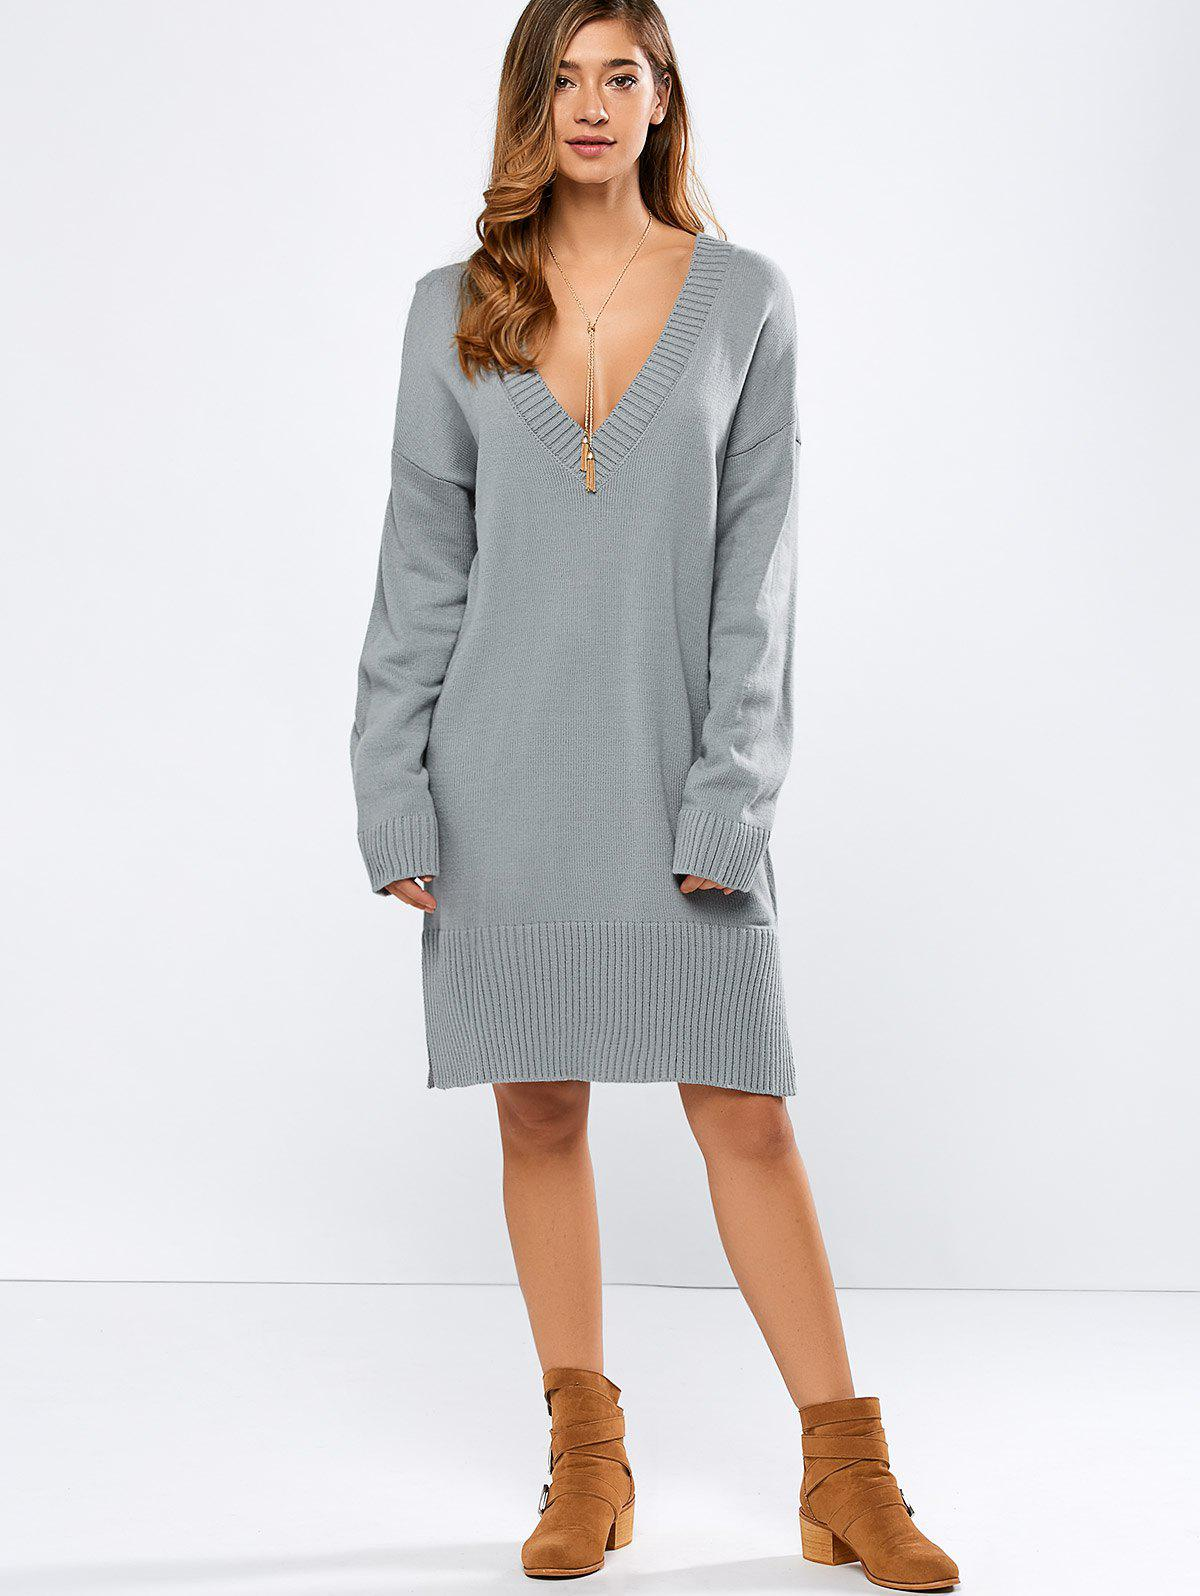 2017 V Neck Long Sleeve Tunic Sweater Dress GRAY M In Sweater ...